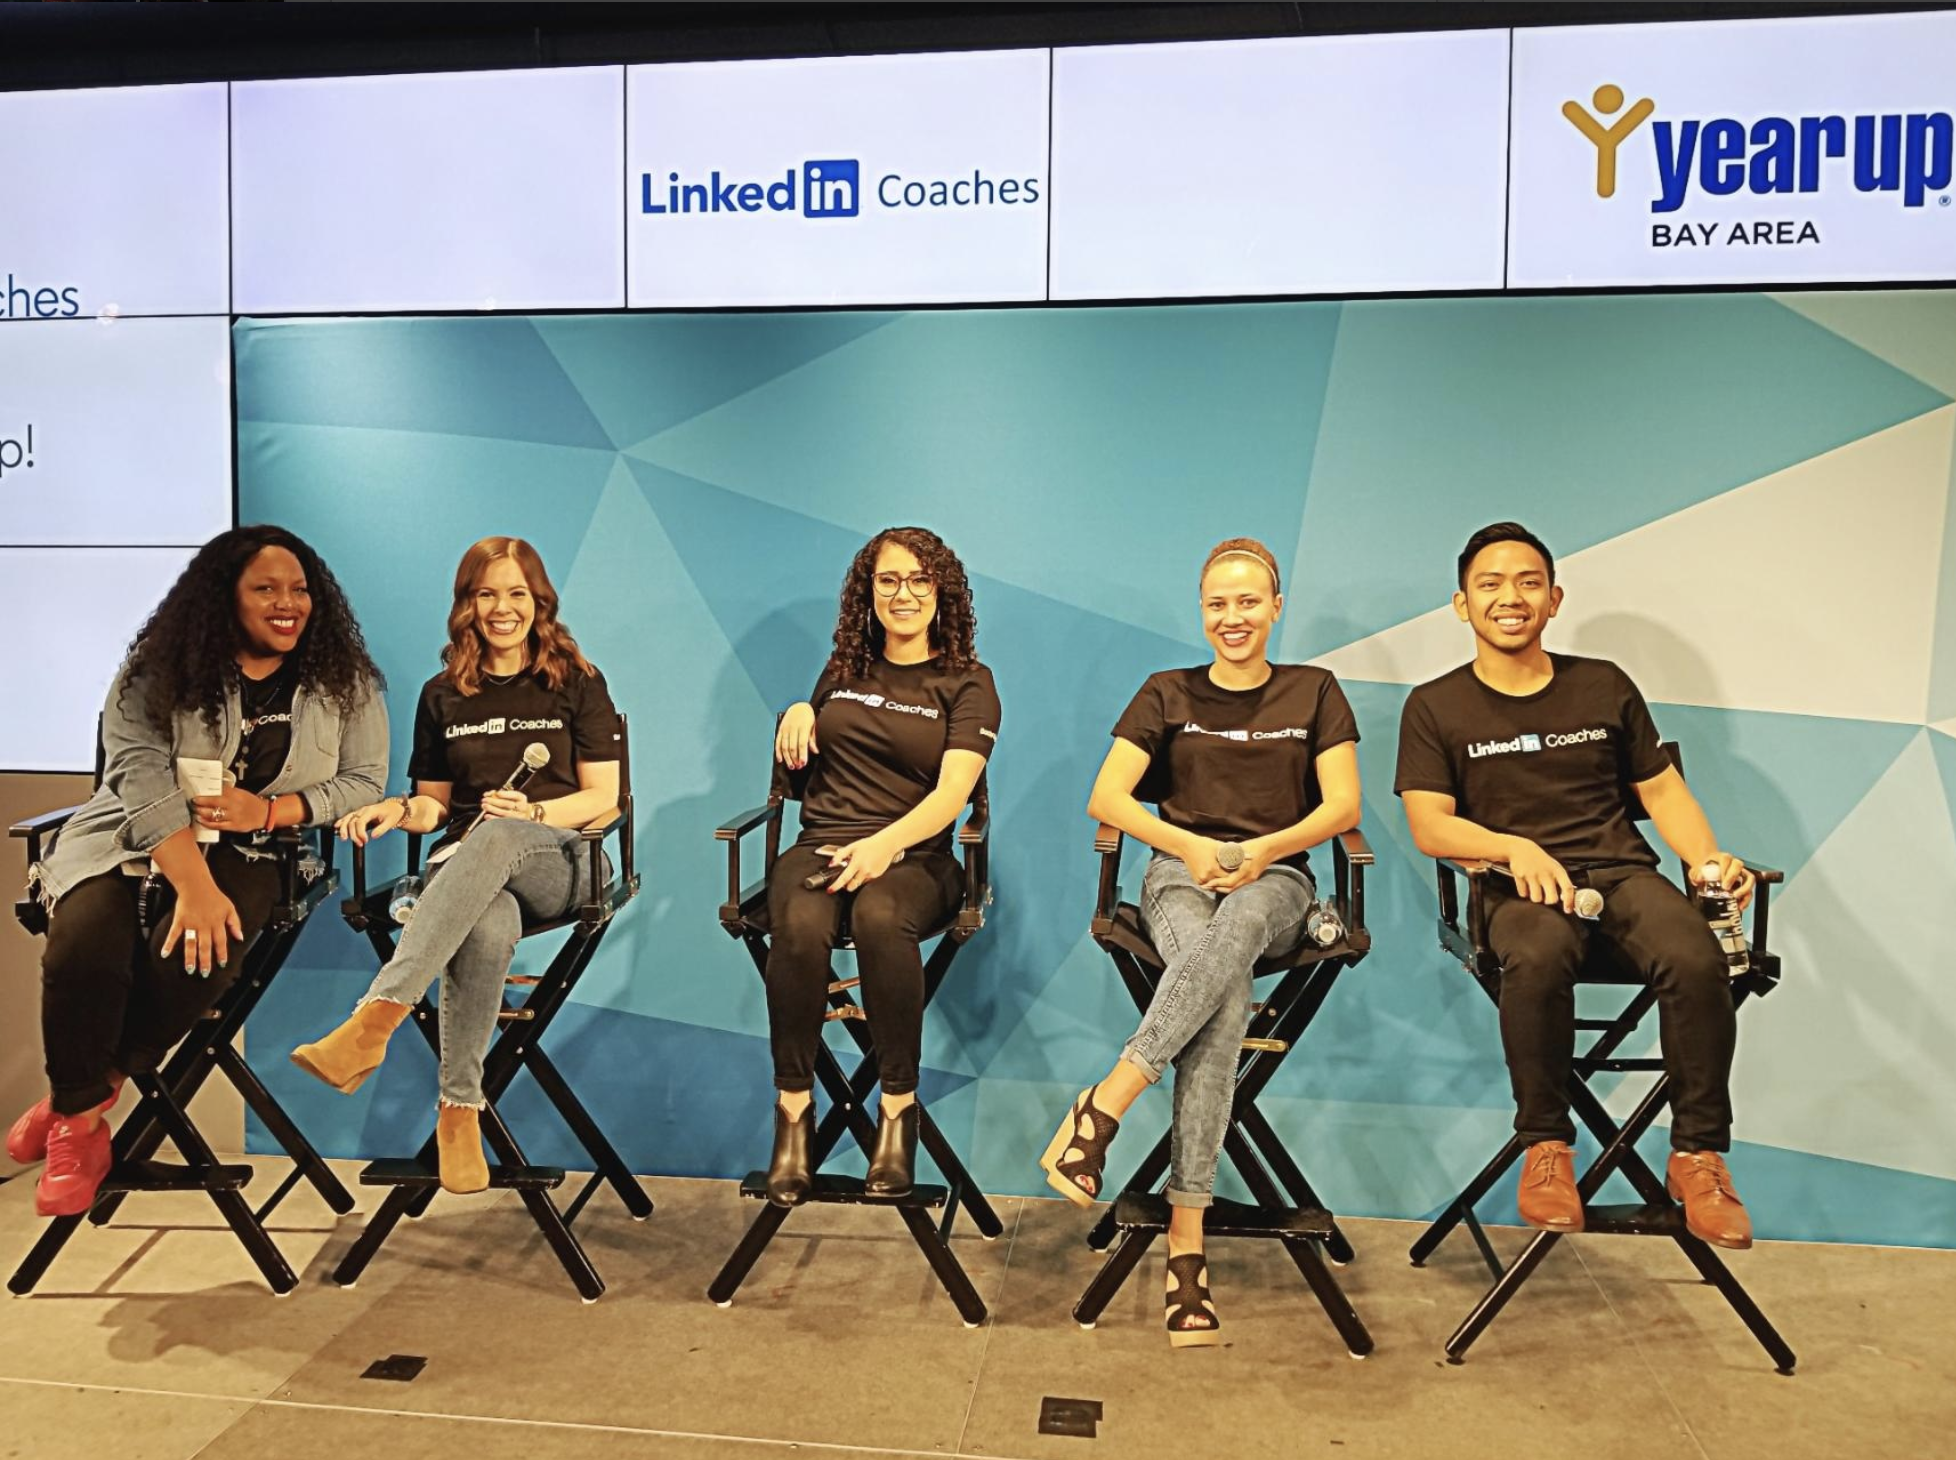 YEAR UP: LinkedIn Coaches Panelist